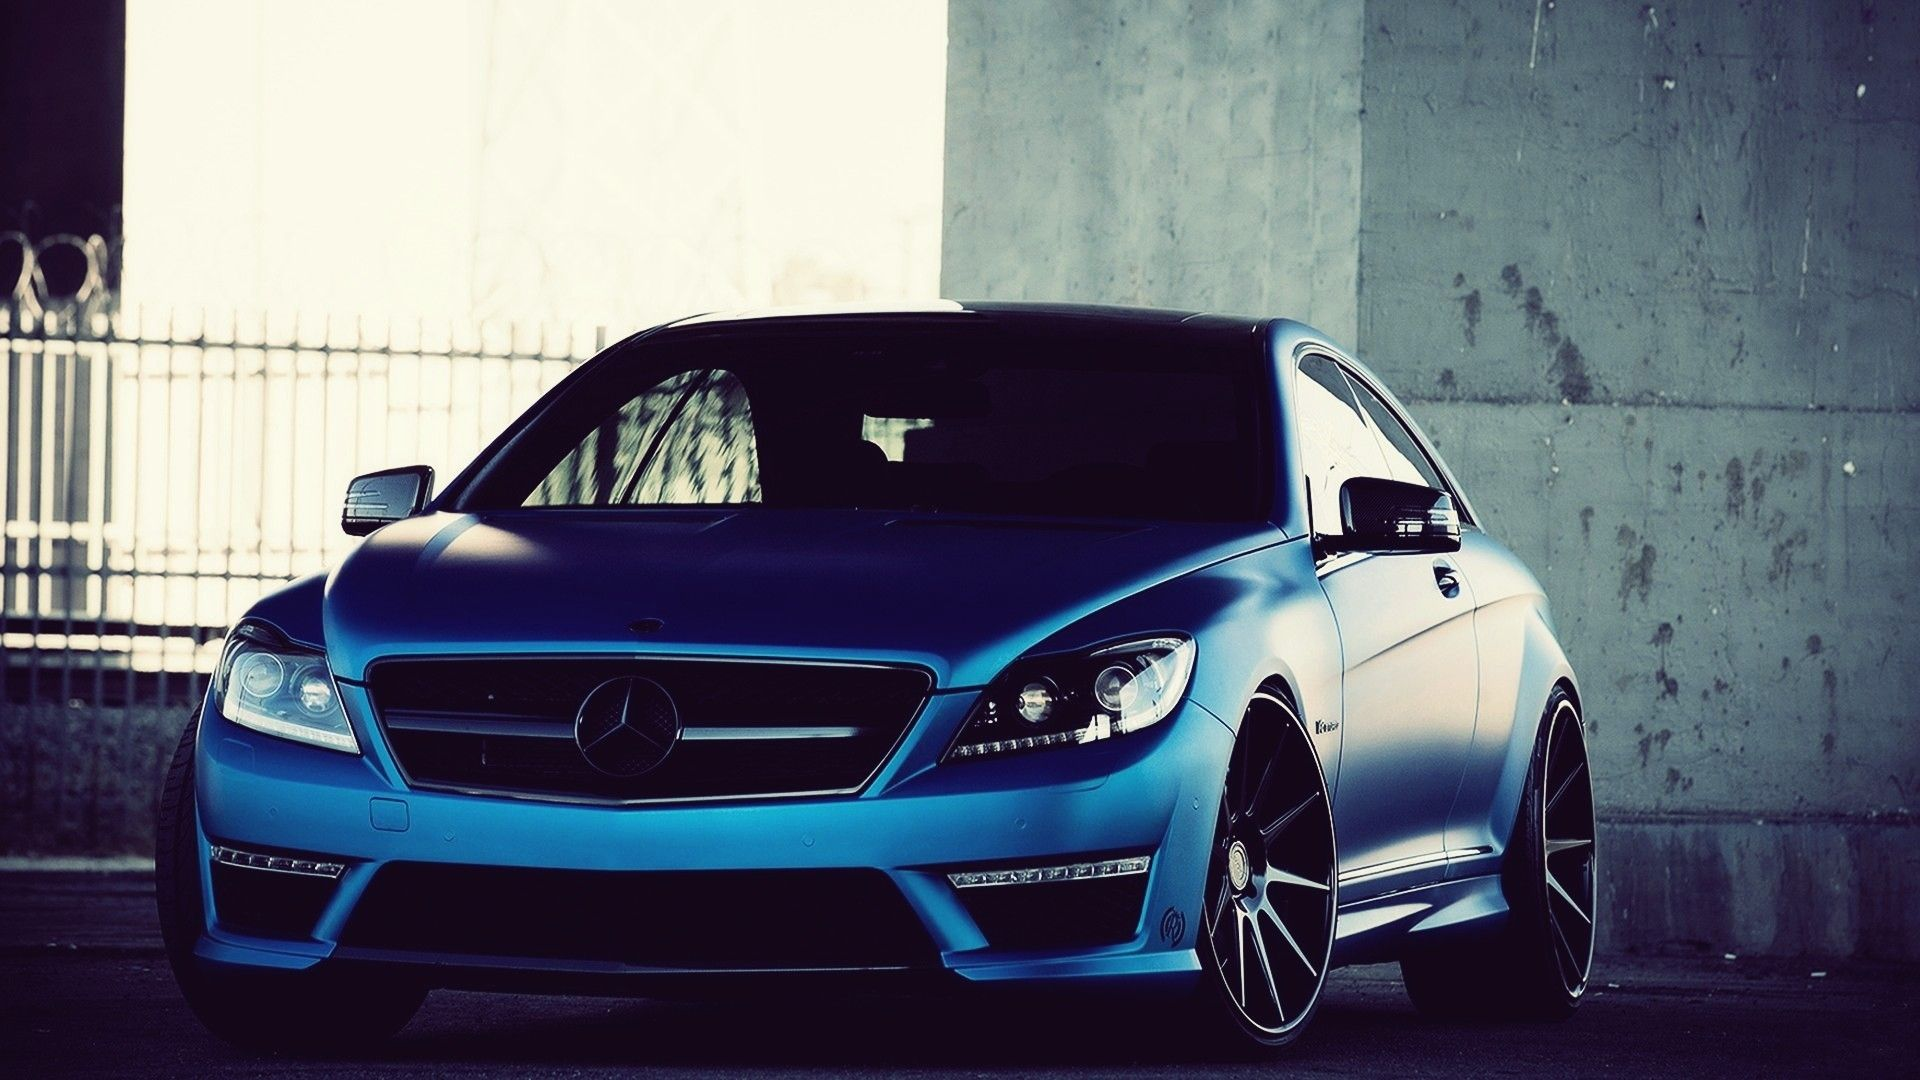 Satin Matte Mercedes Cls Amg 1920x1080 Need Iphone 6s Plus Wallpaper Background For Iphone6splus Follow Iphone 6s Mercedes Cls Amg Benz Mercedes Cl63